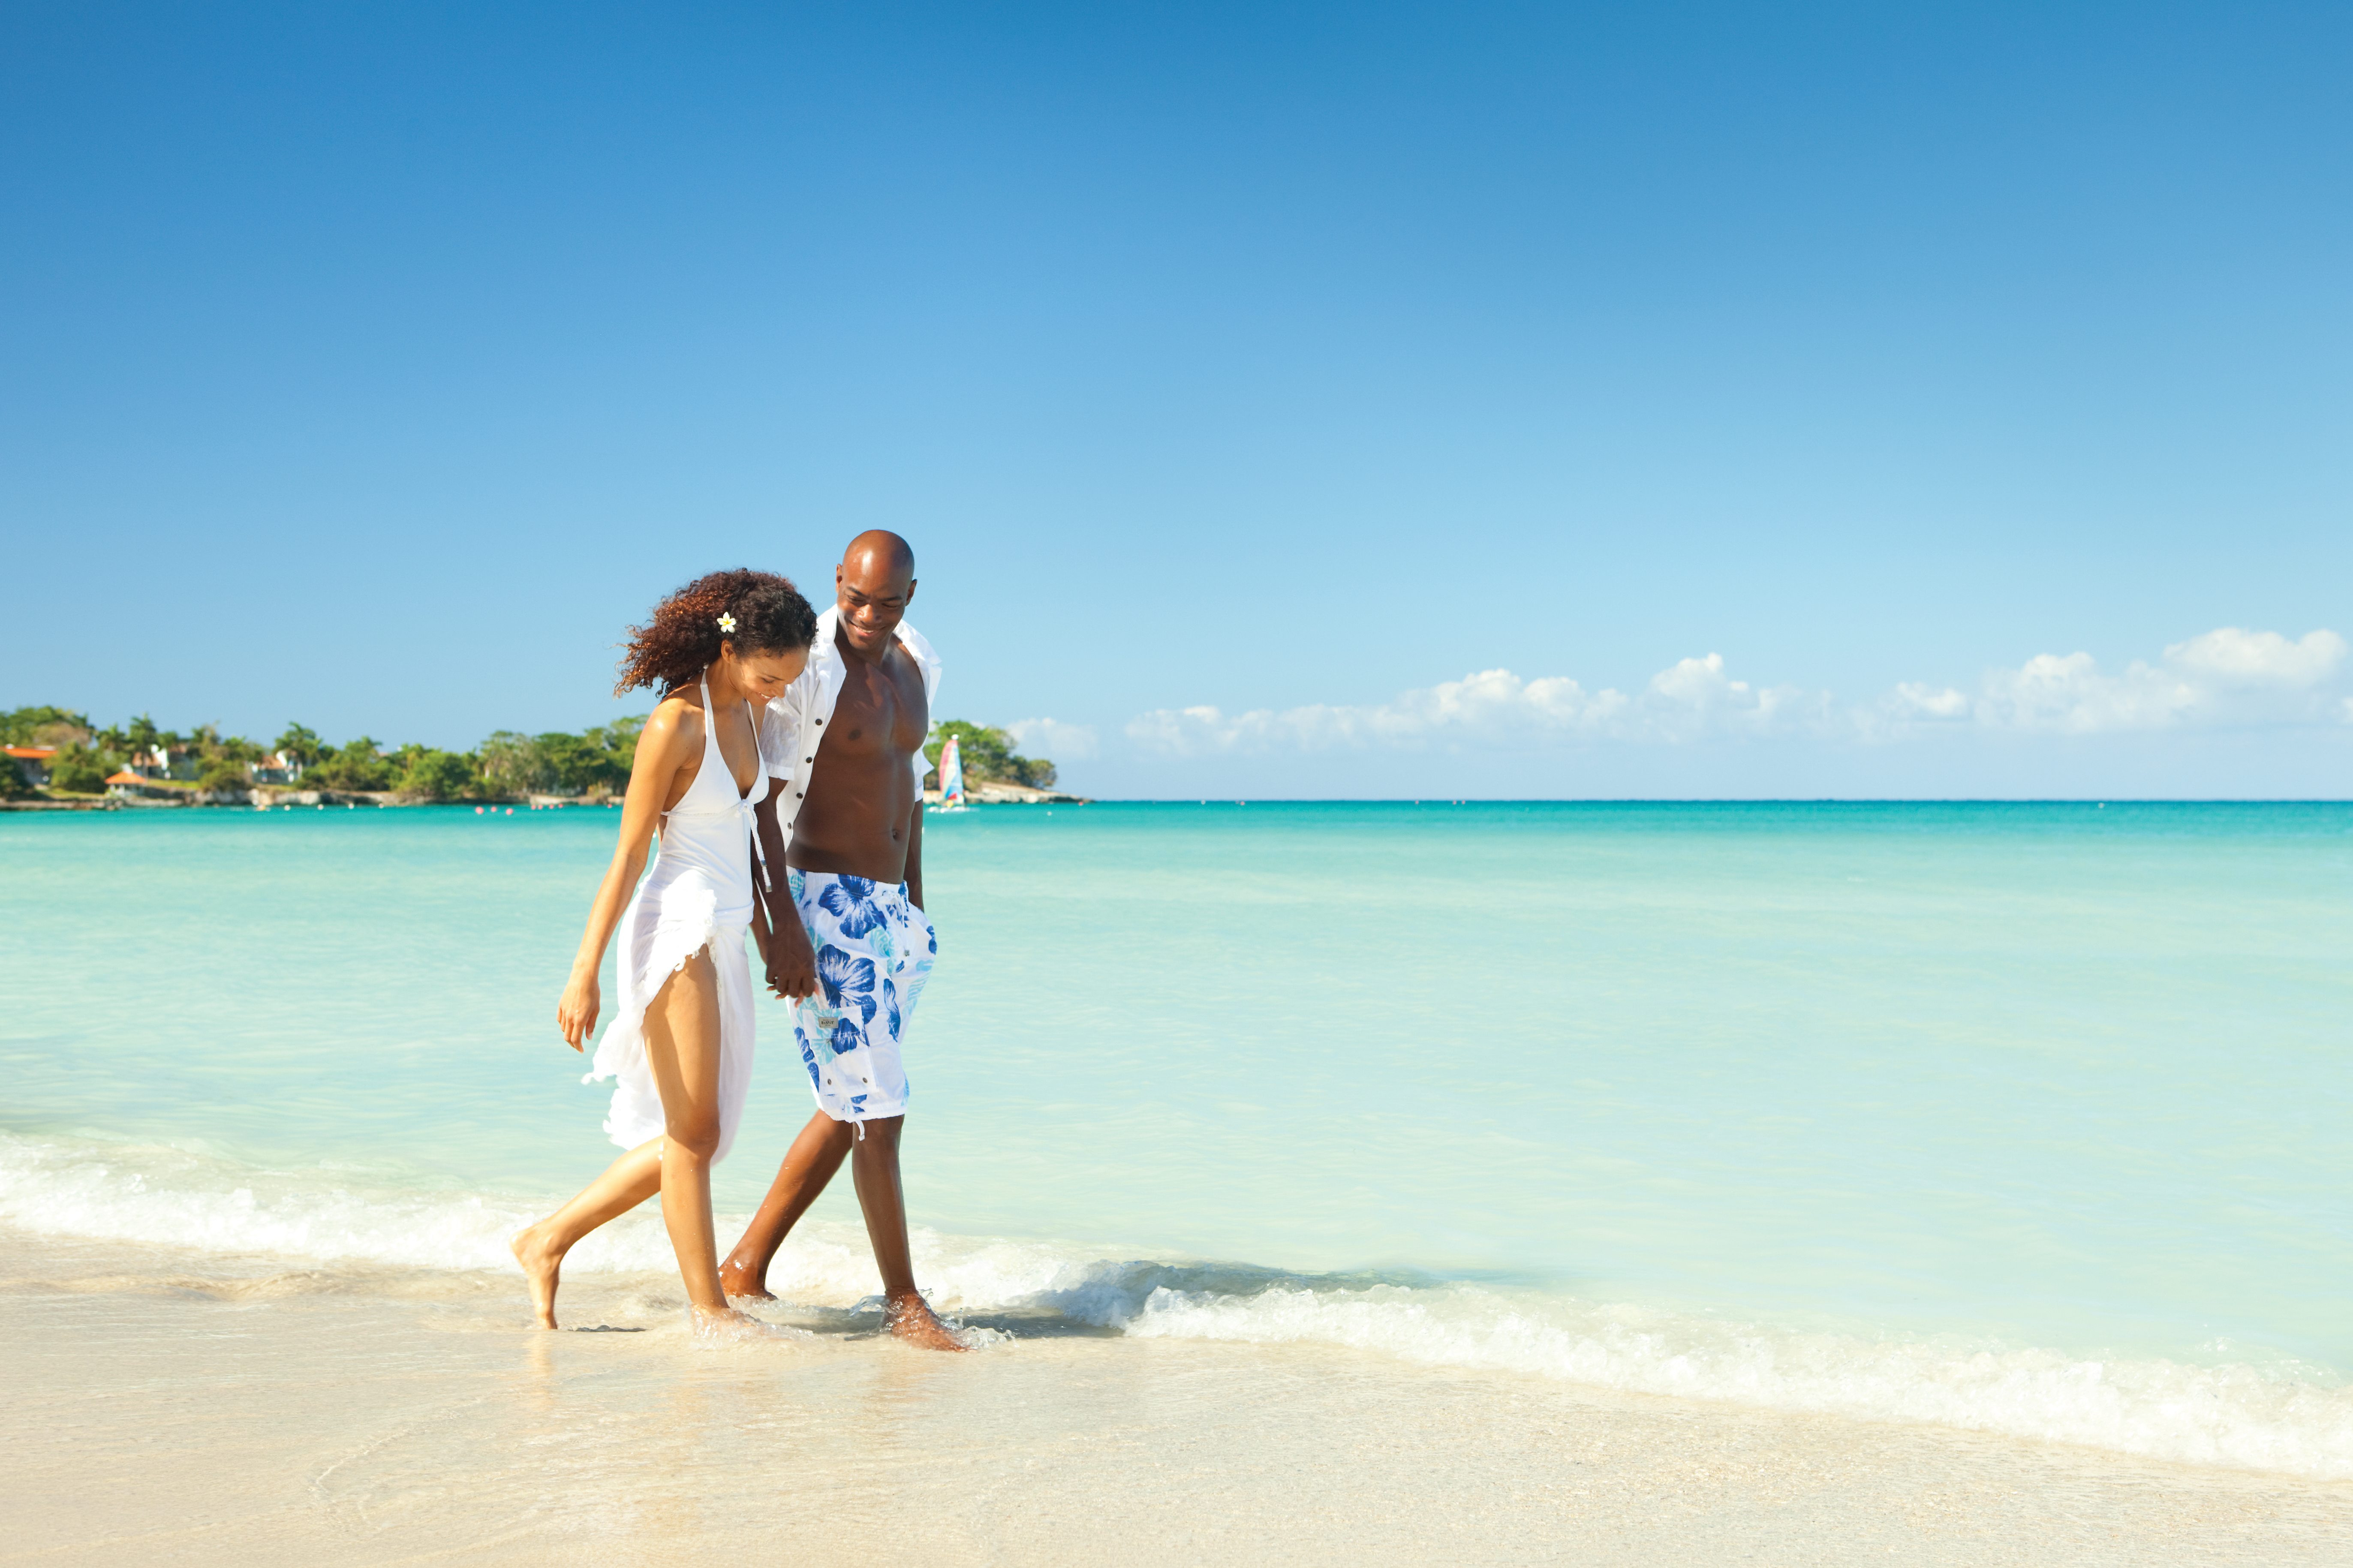 Travel Agency All-Inclusive Resort Couples Negril 32